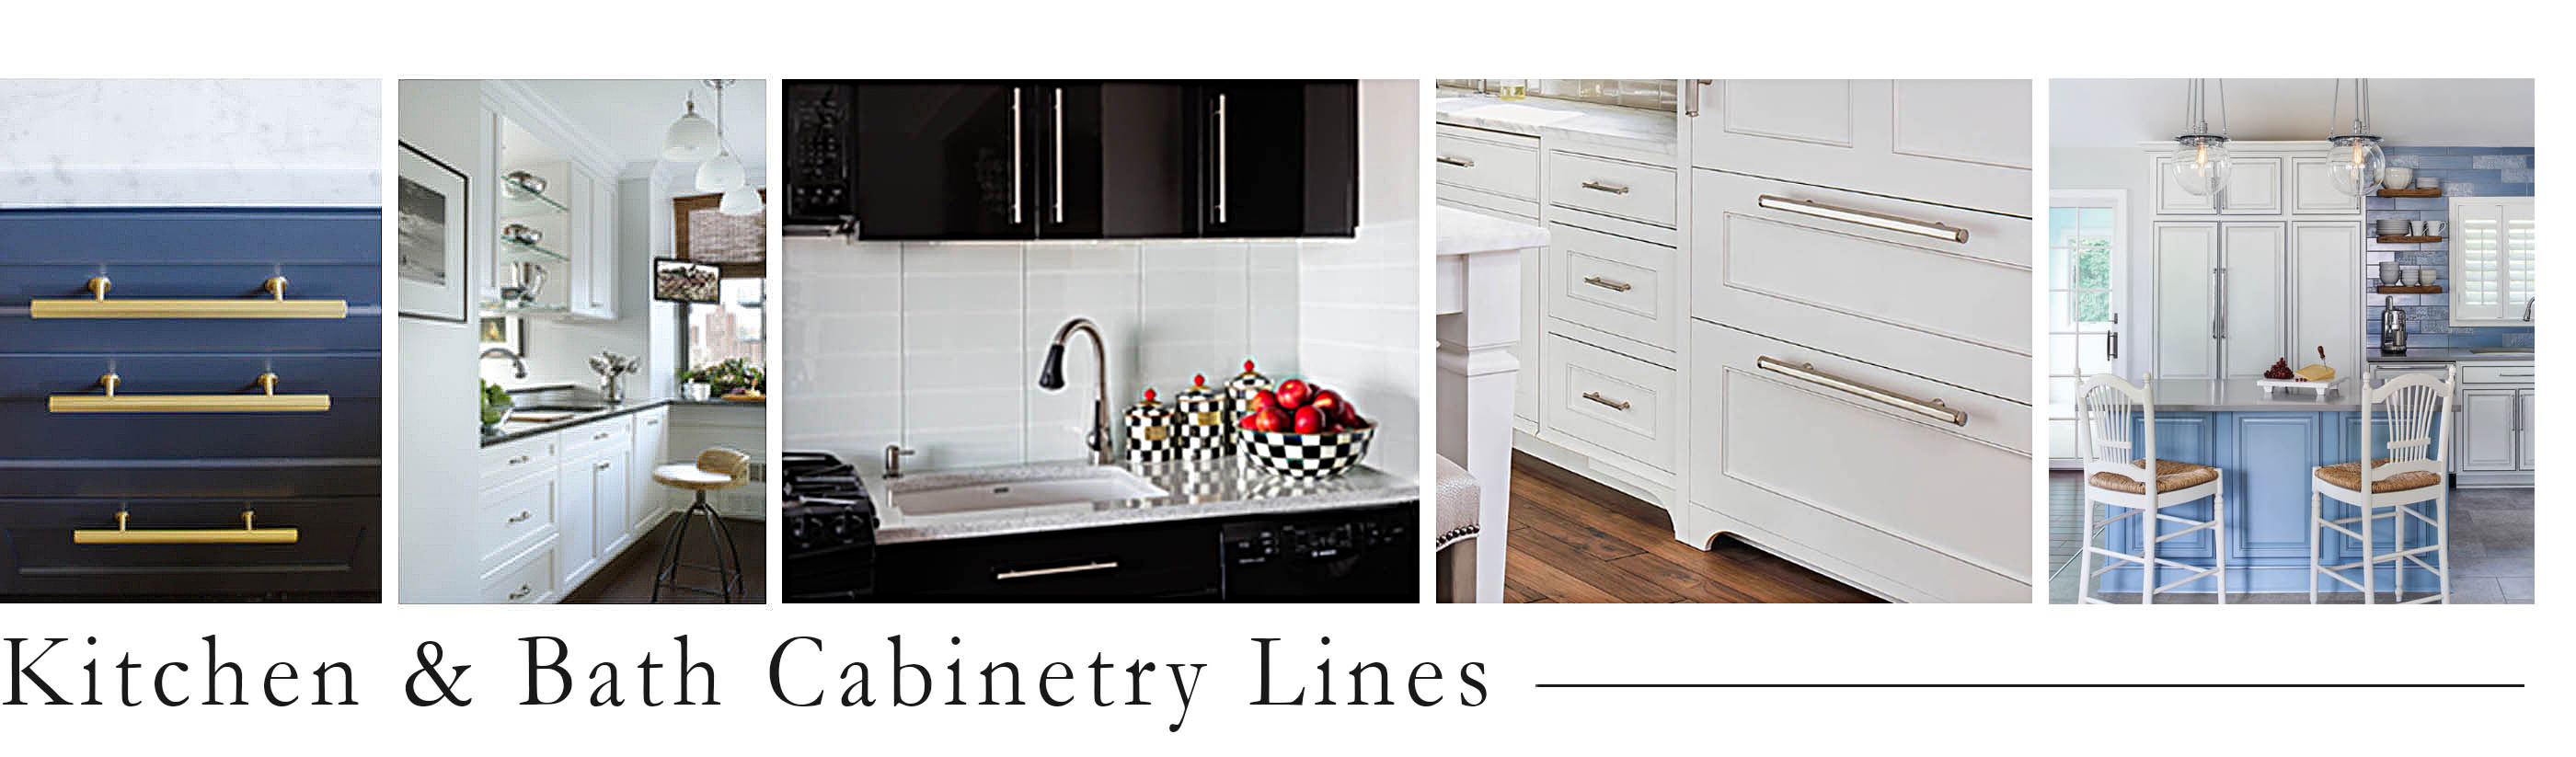 Kitchen-_-Bathroom-Cabinetry-Lines-8-21-18_edit-a